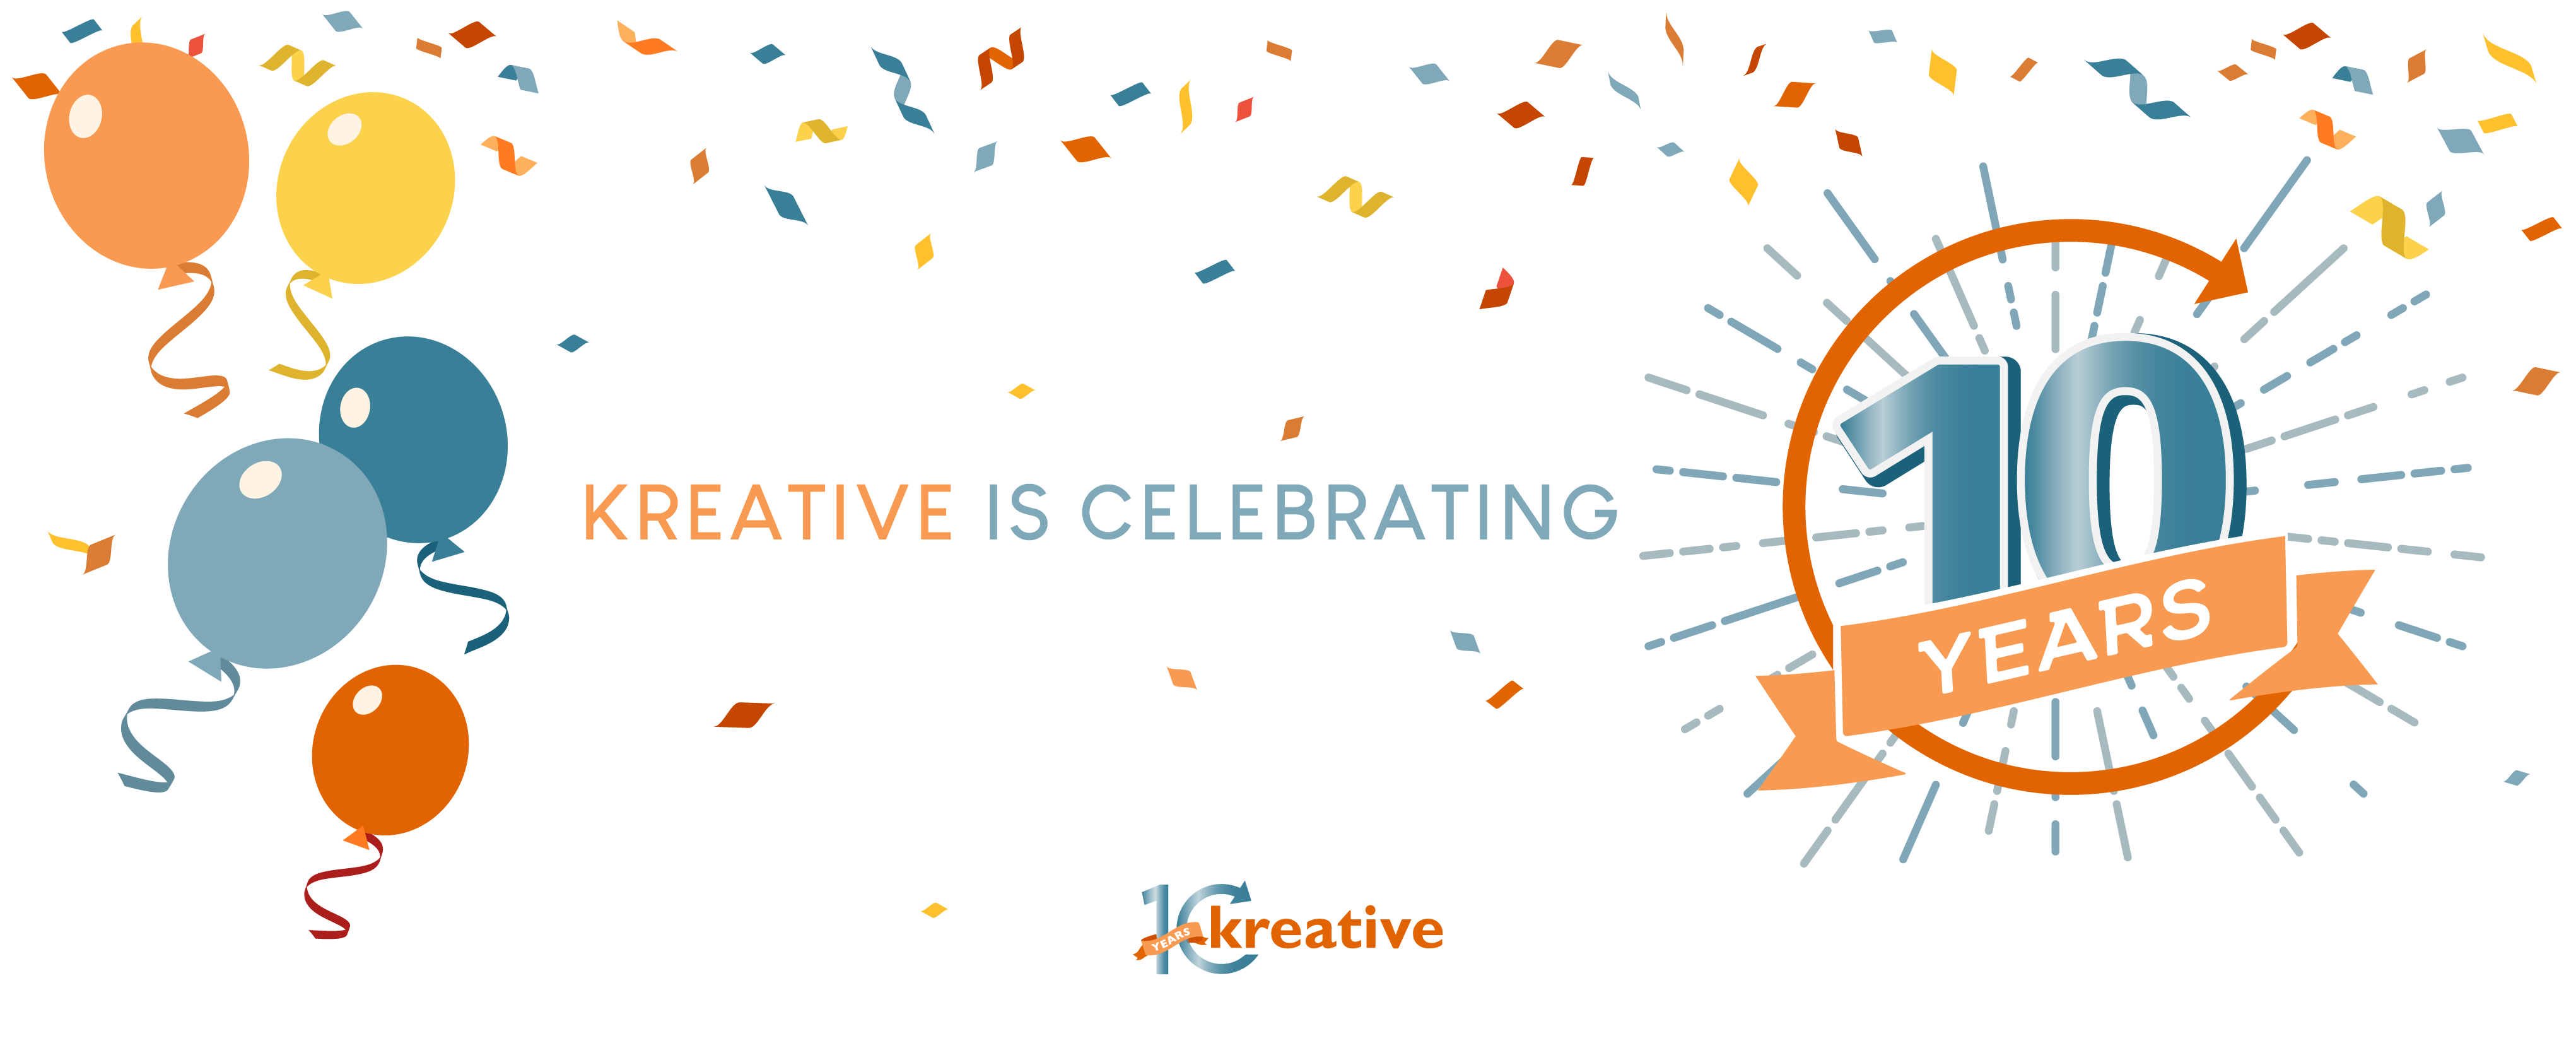 Kreative Commemorates 10 Years of Business – Kreative Expands